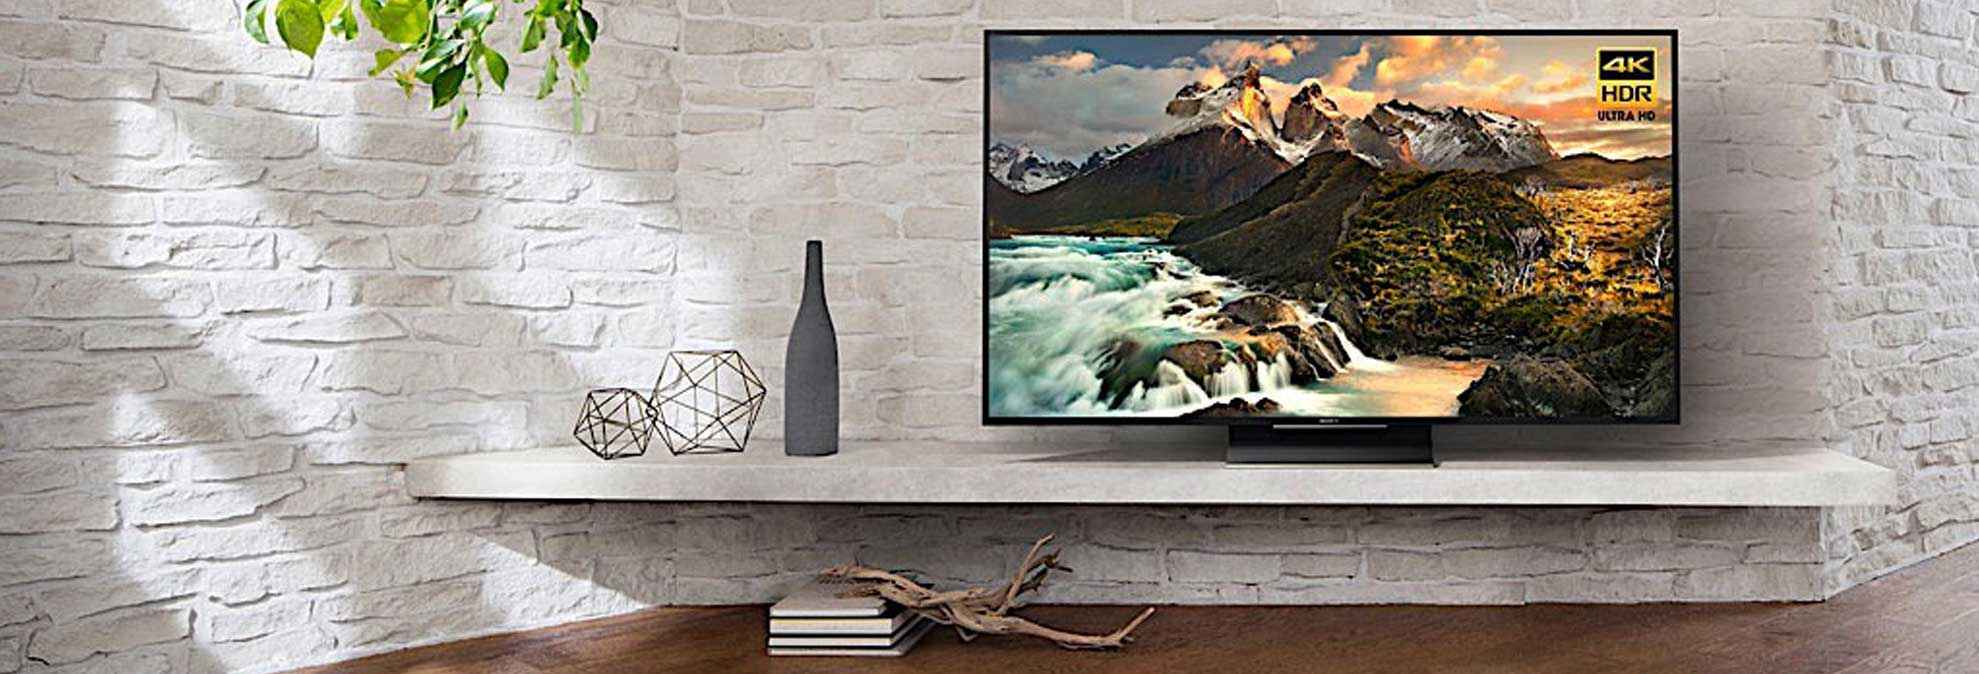 Is the $6,000 Sony TV Really a Tech Breakthrough?